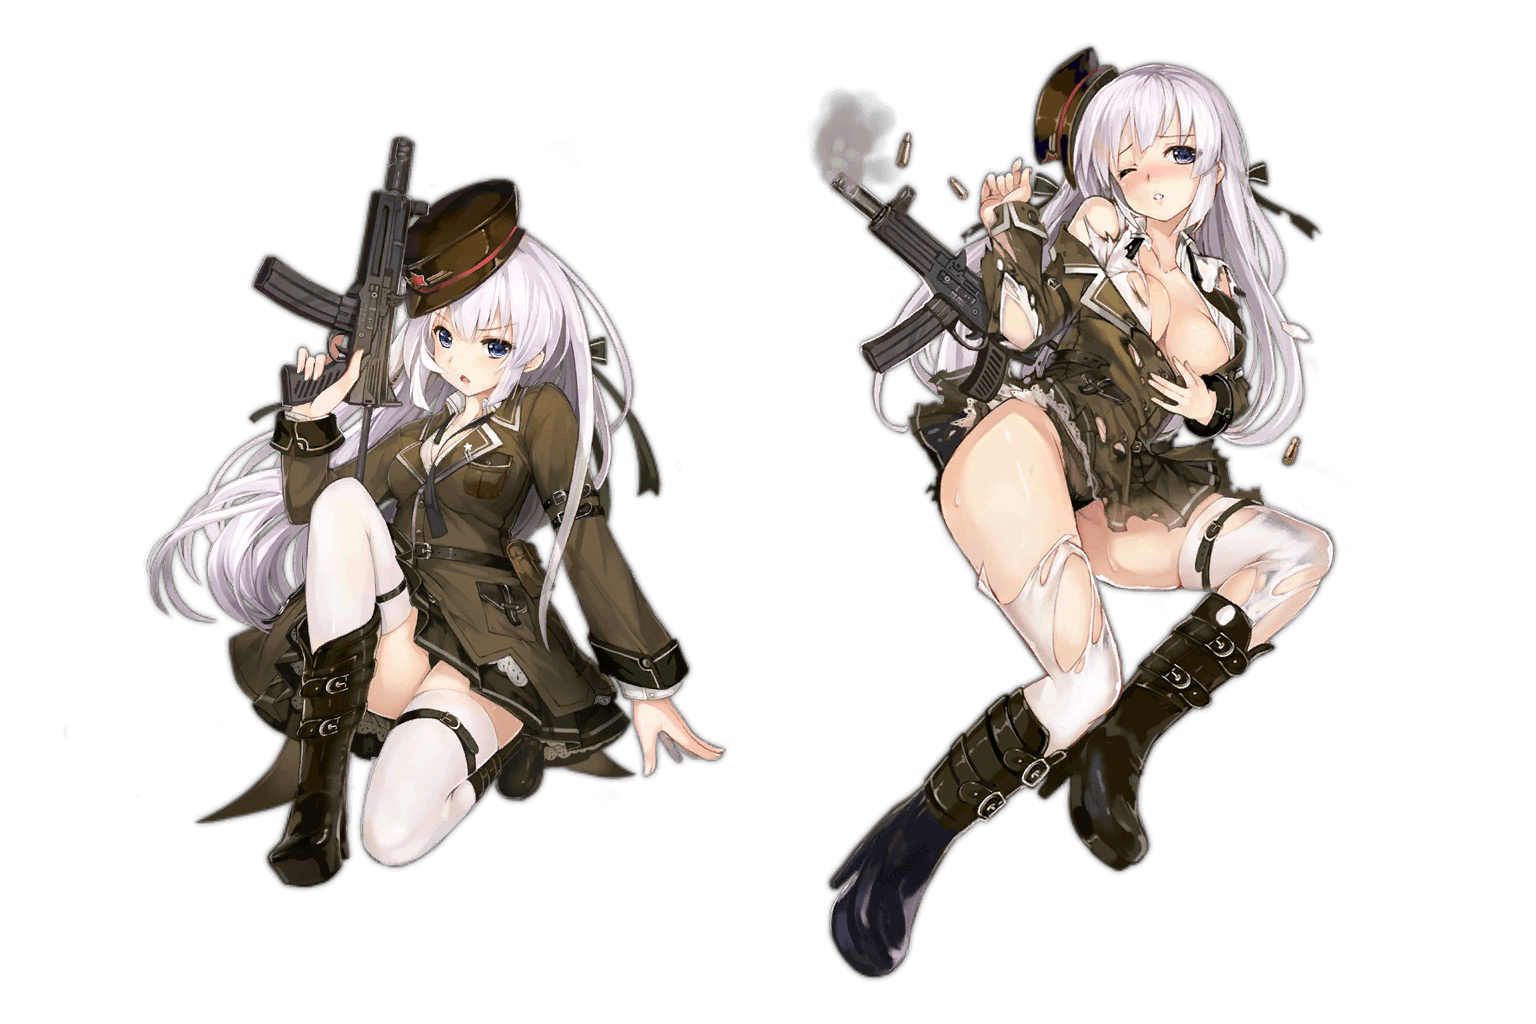 Standard and Damaged art for SMG OTs-39 in Girls' Frontline